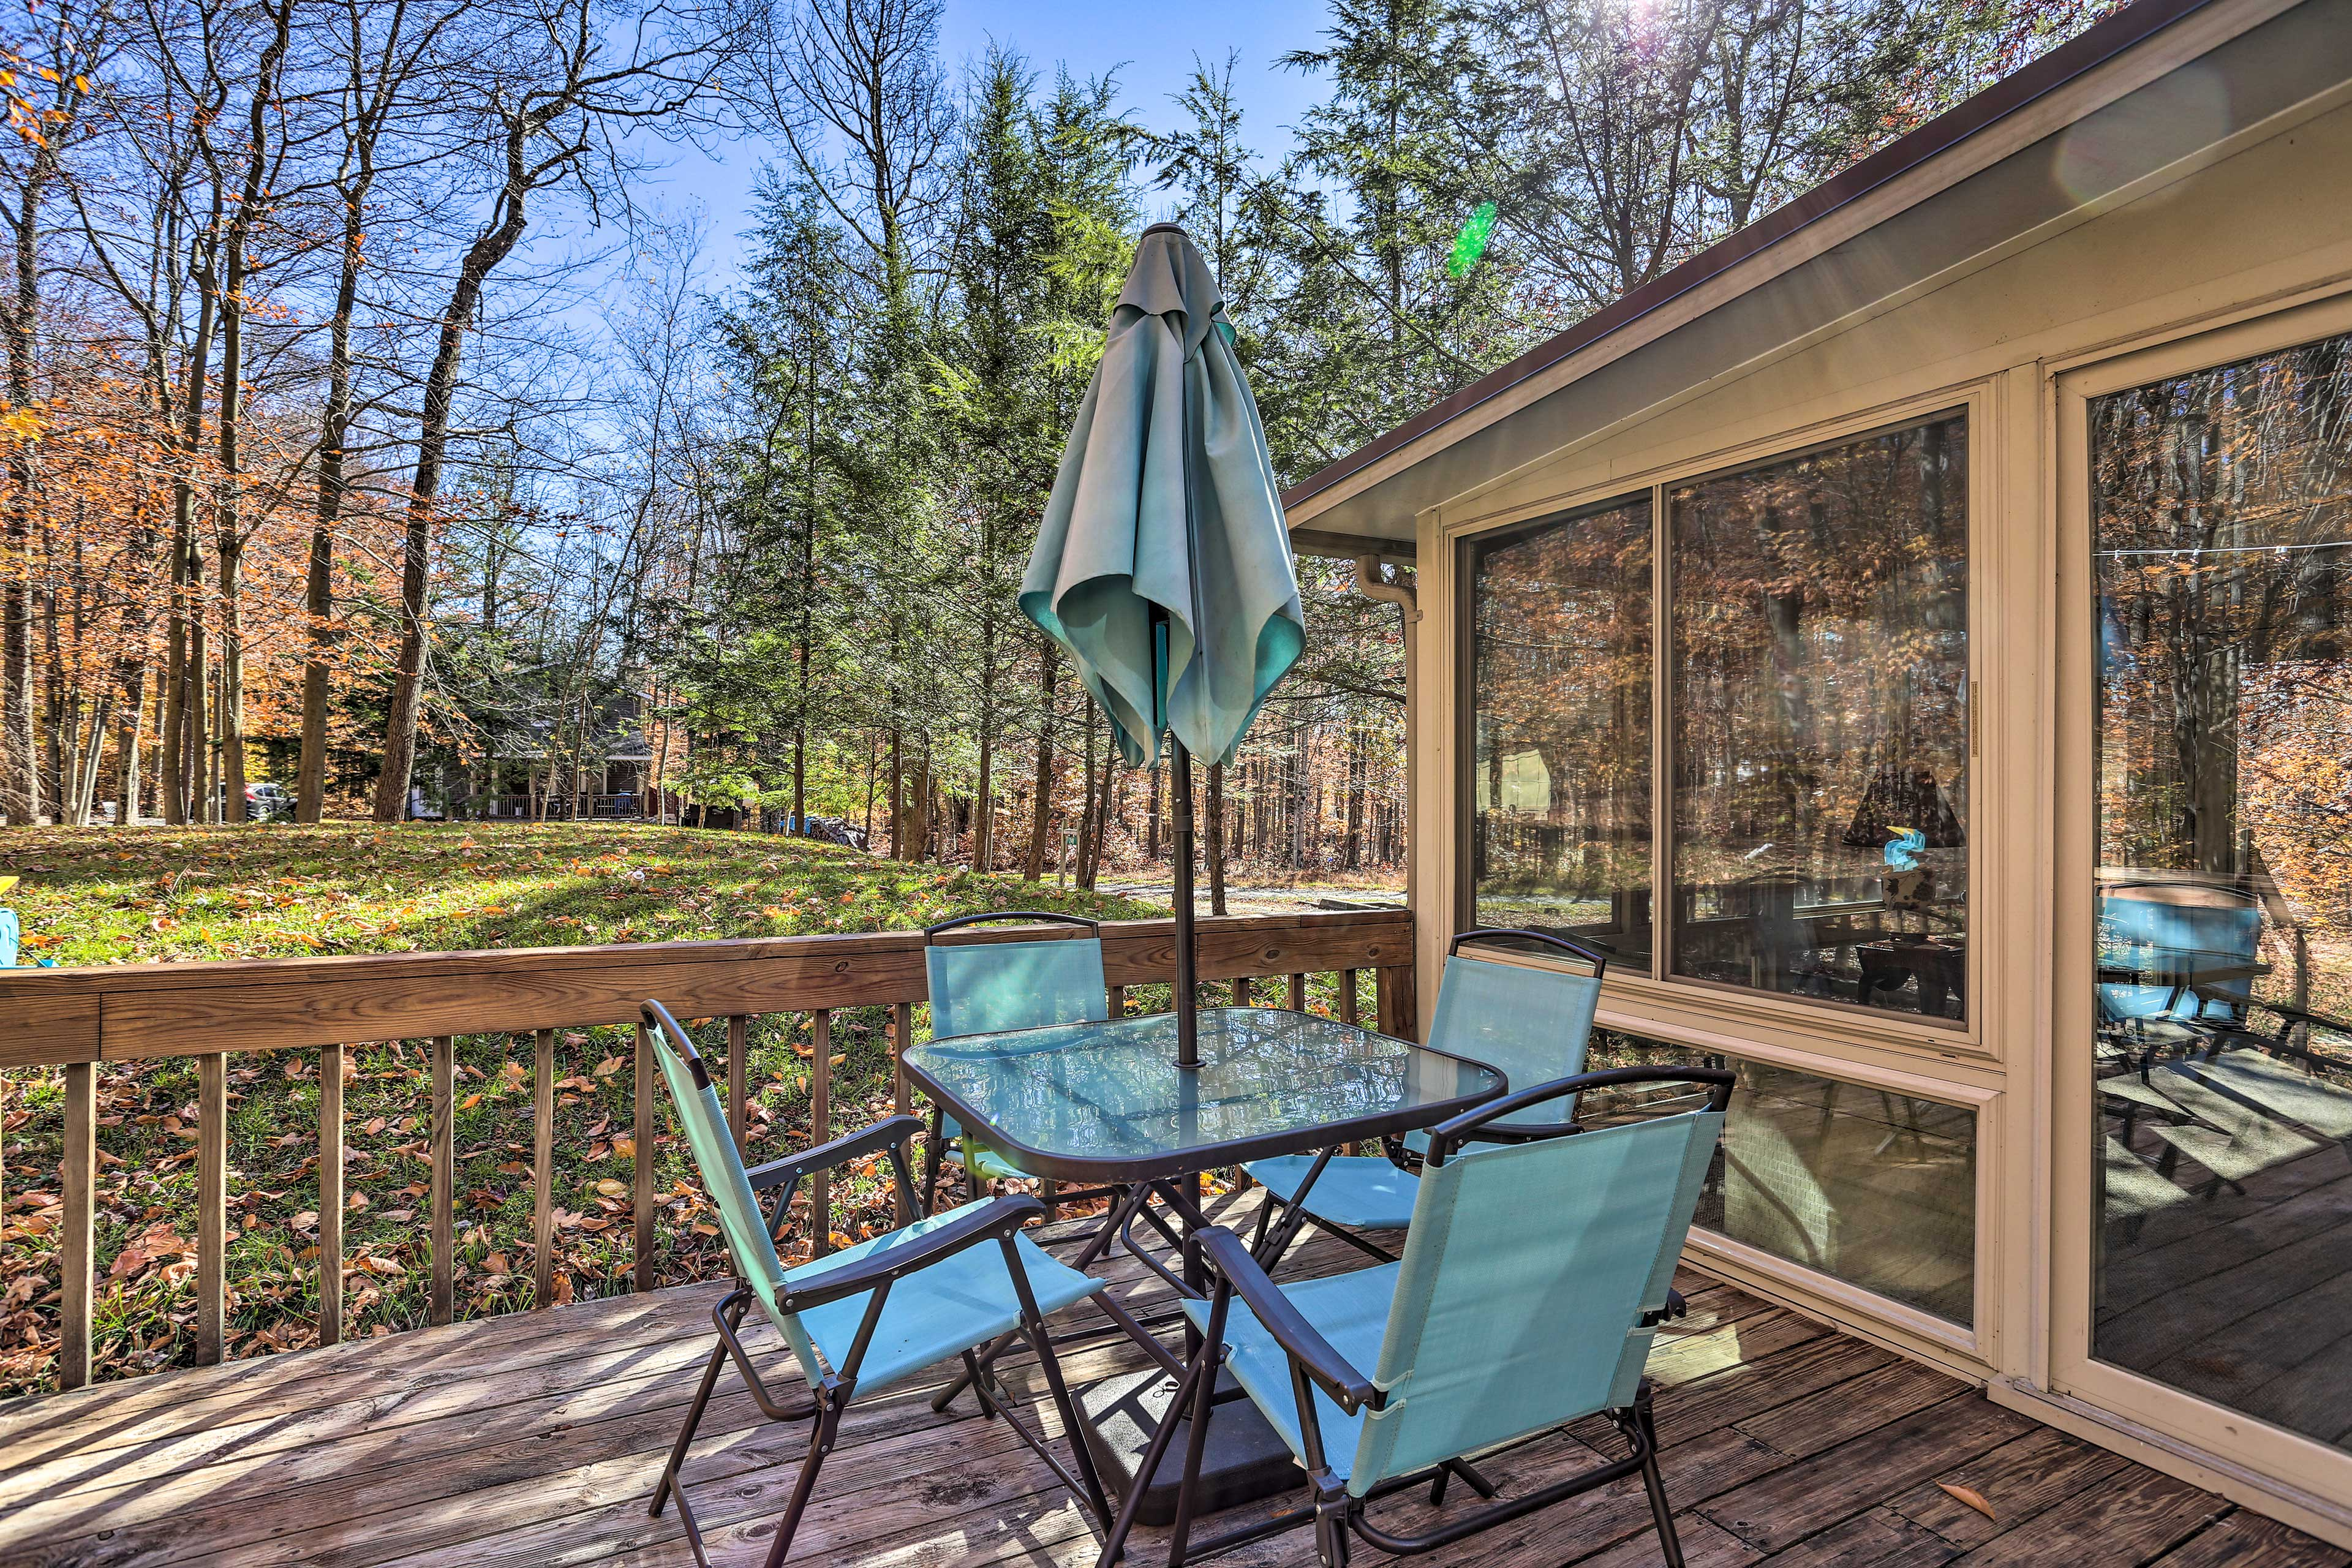 This vacation rental promises plenty of relaxation.